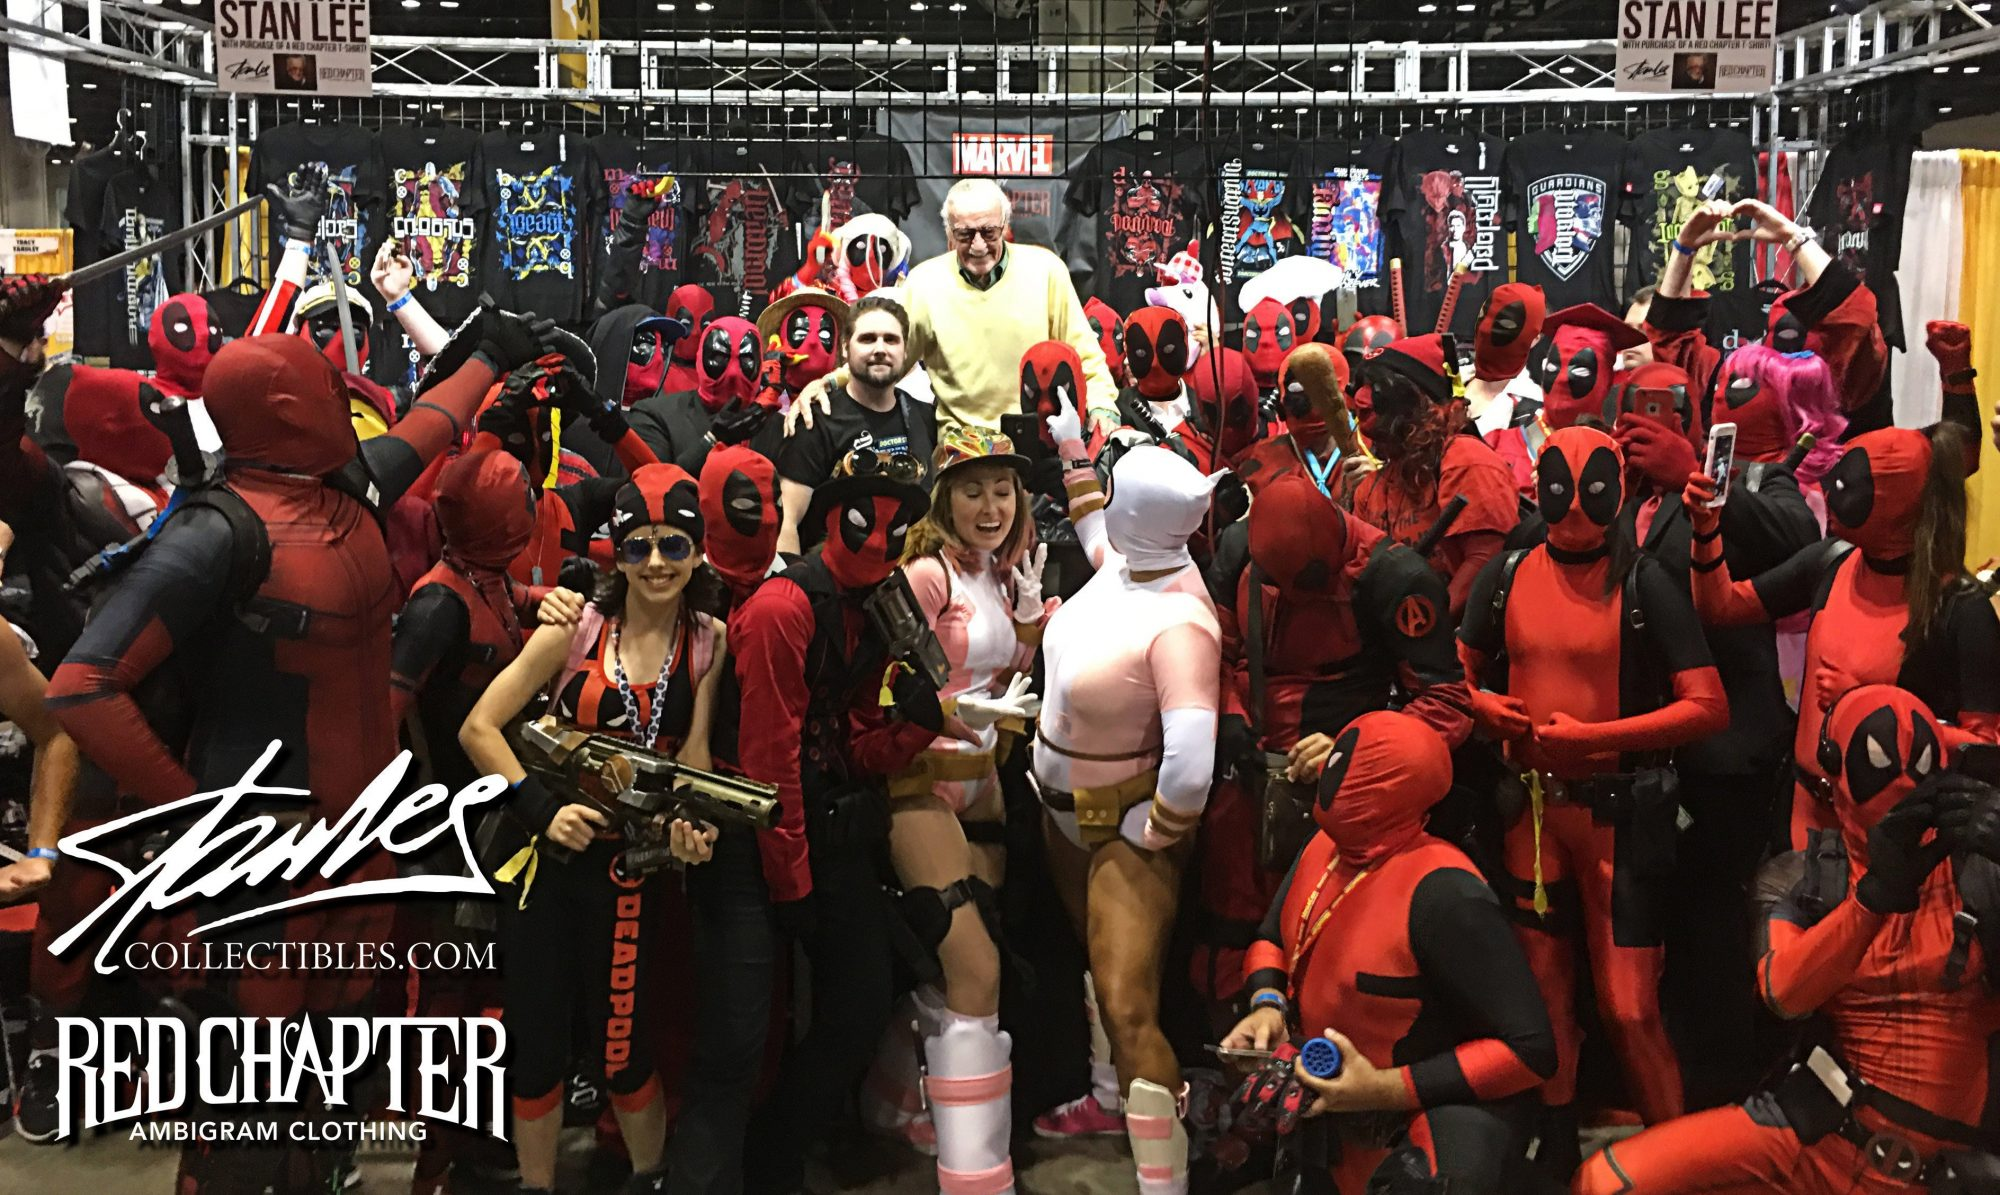 Stan Lee Surprises Deadpool Cosplayers With A Special Photo Op